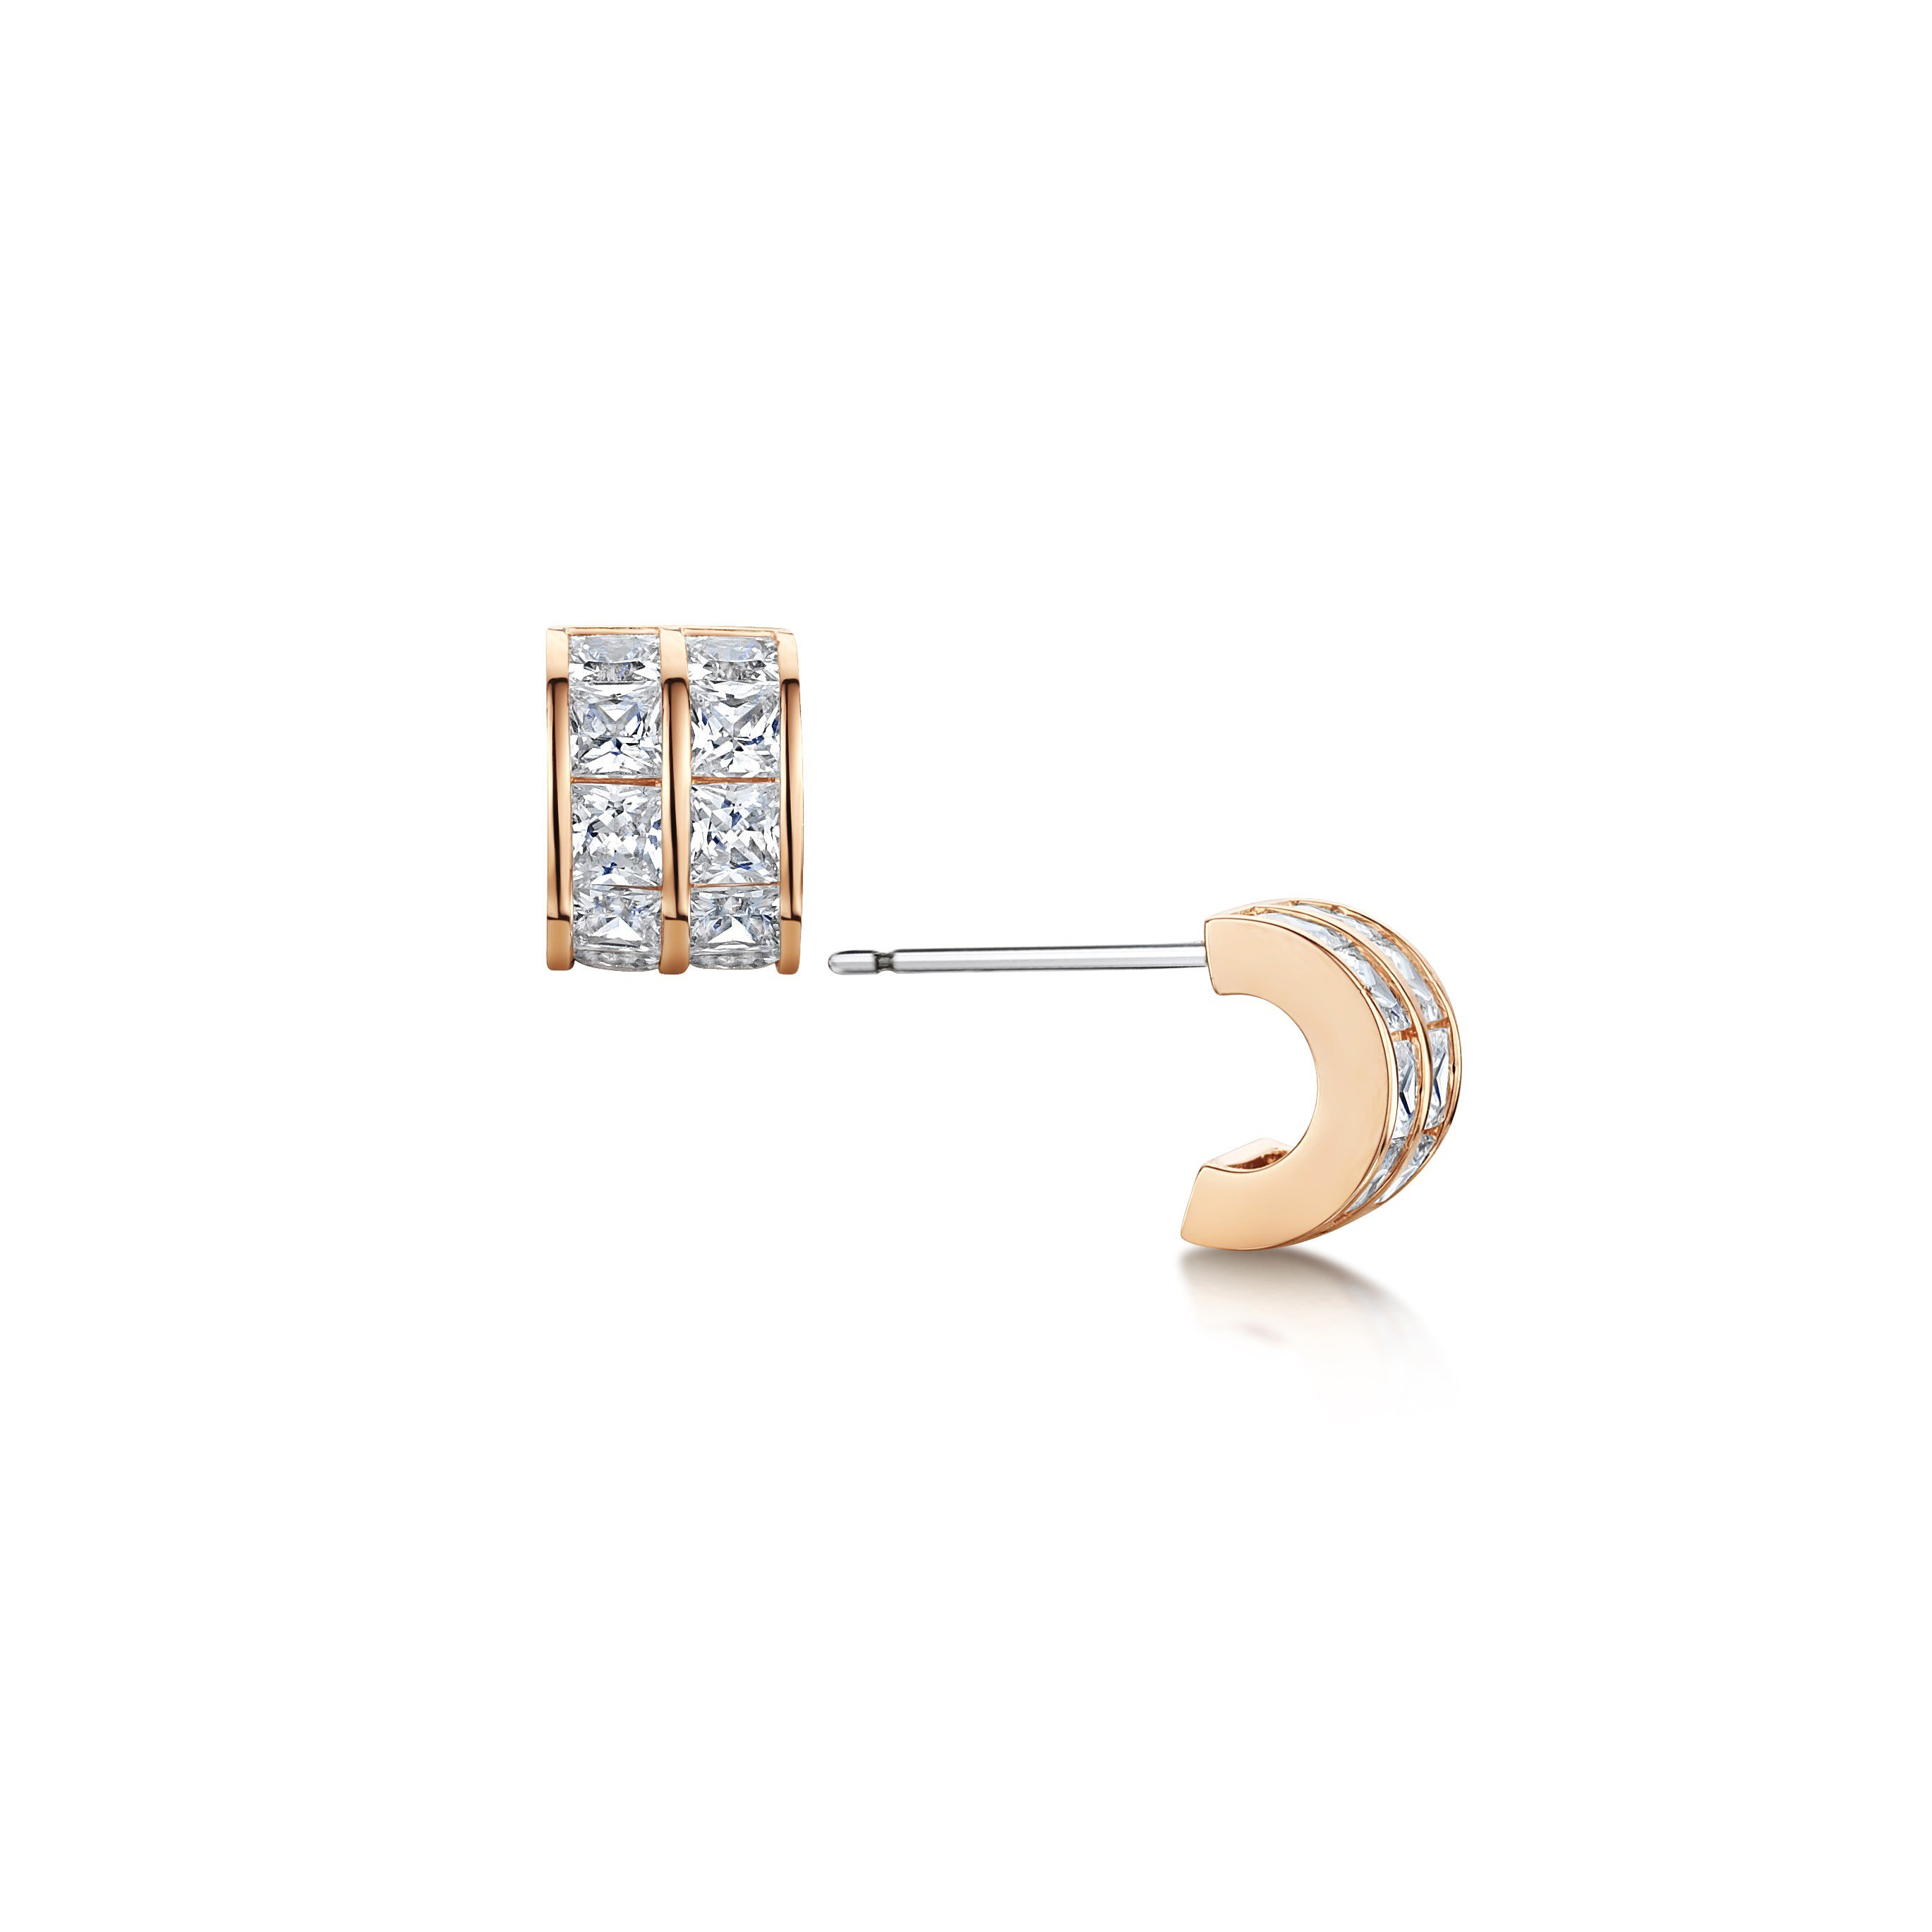 Ice Cube Hoop Earrings – Rose Gold Regarding Newest Sparkling Ice Cube Rings (View 15 of 25)